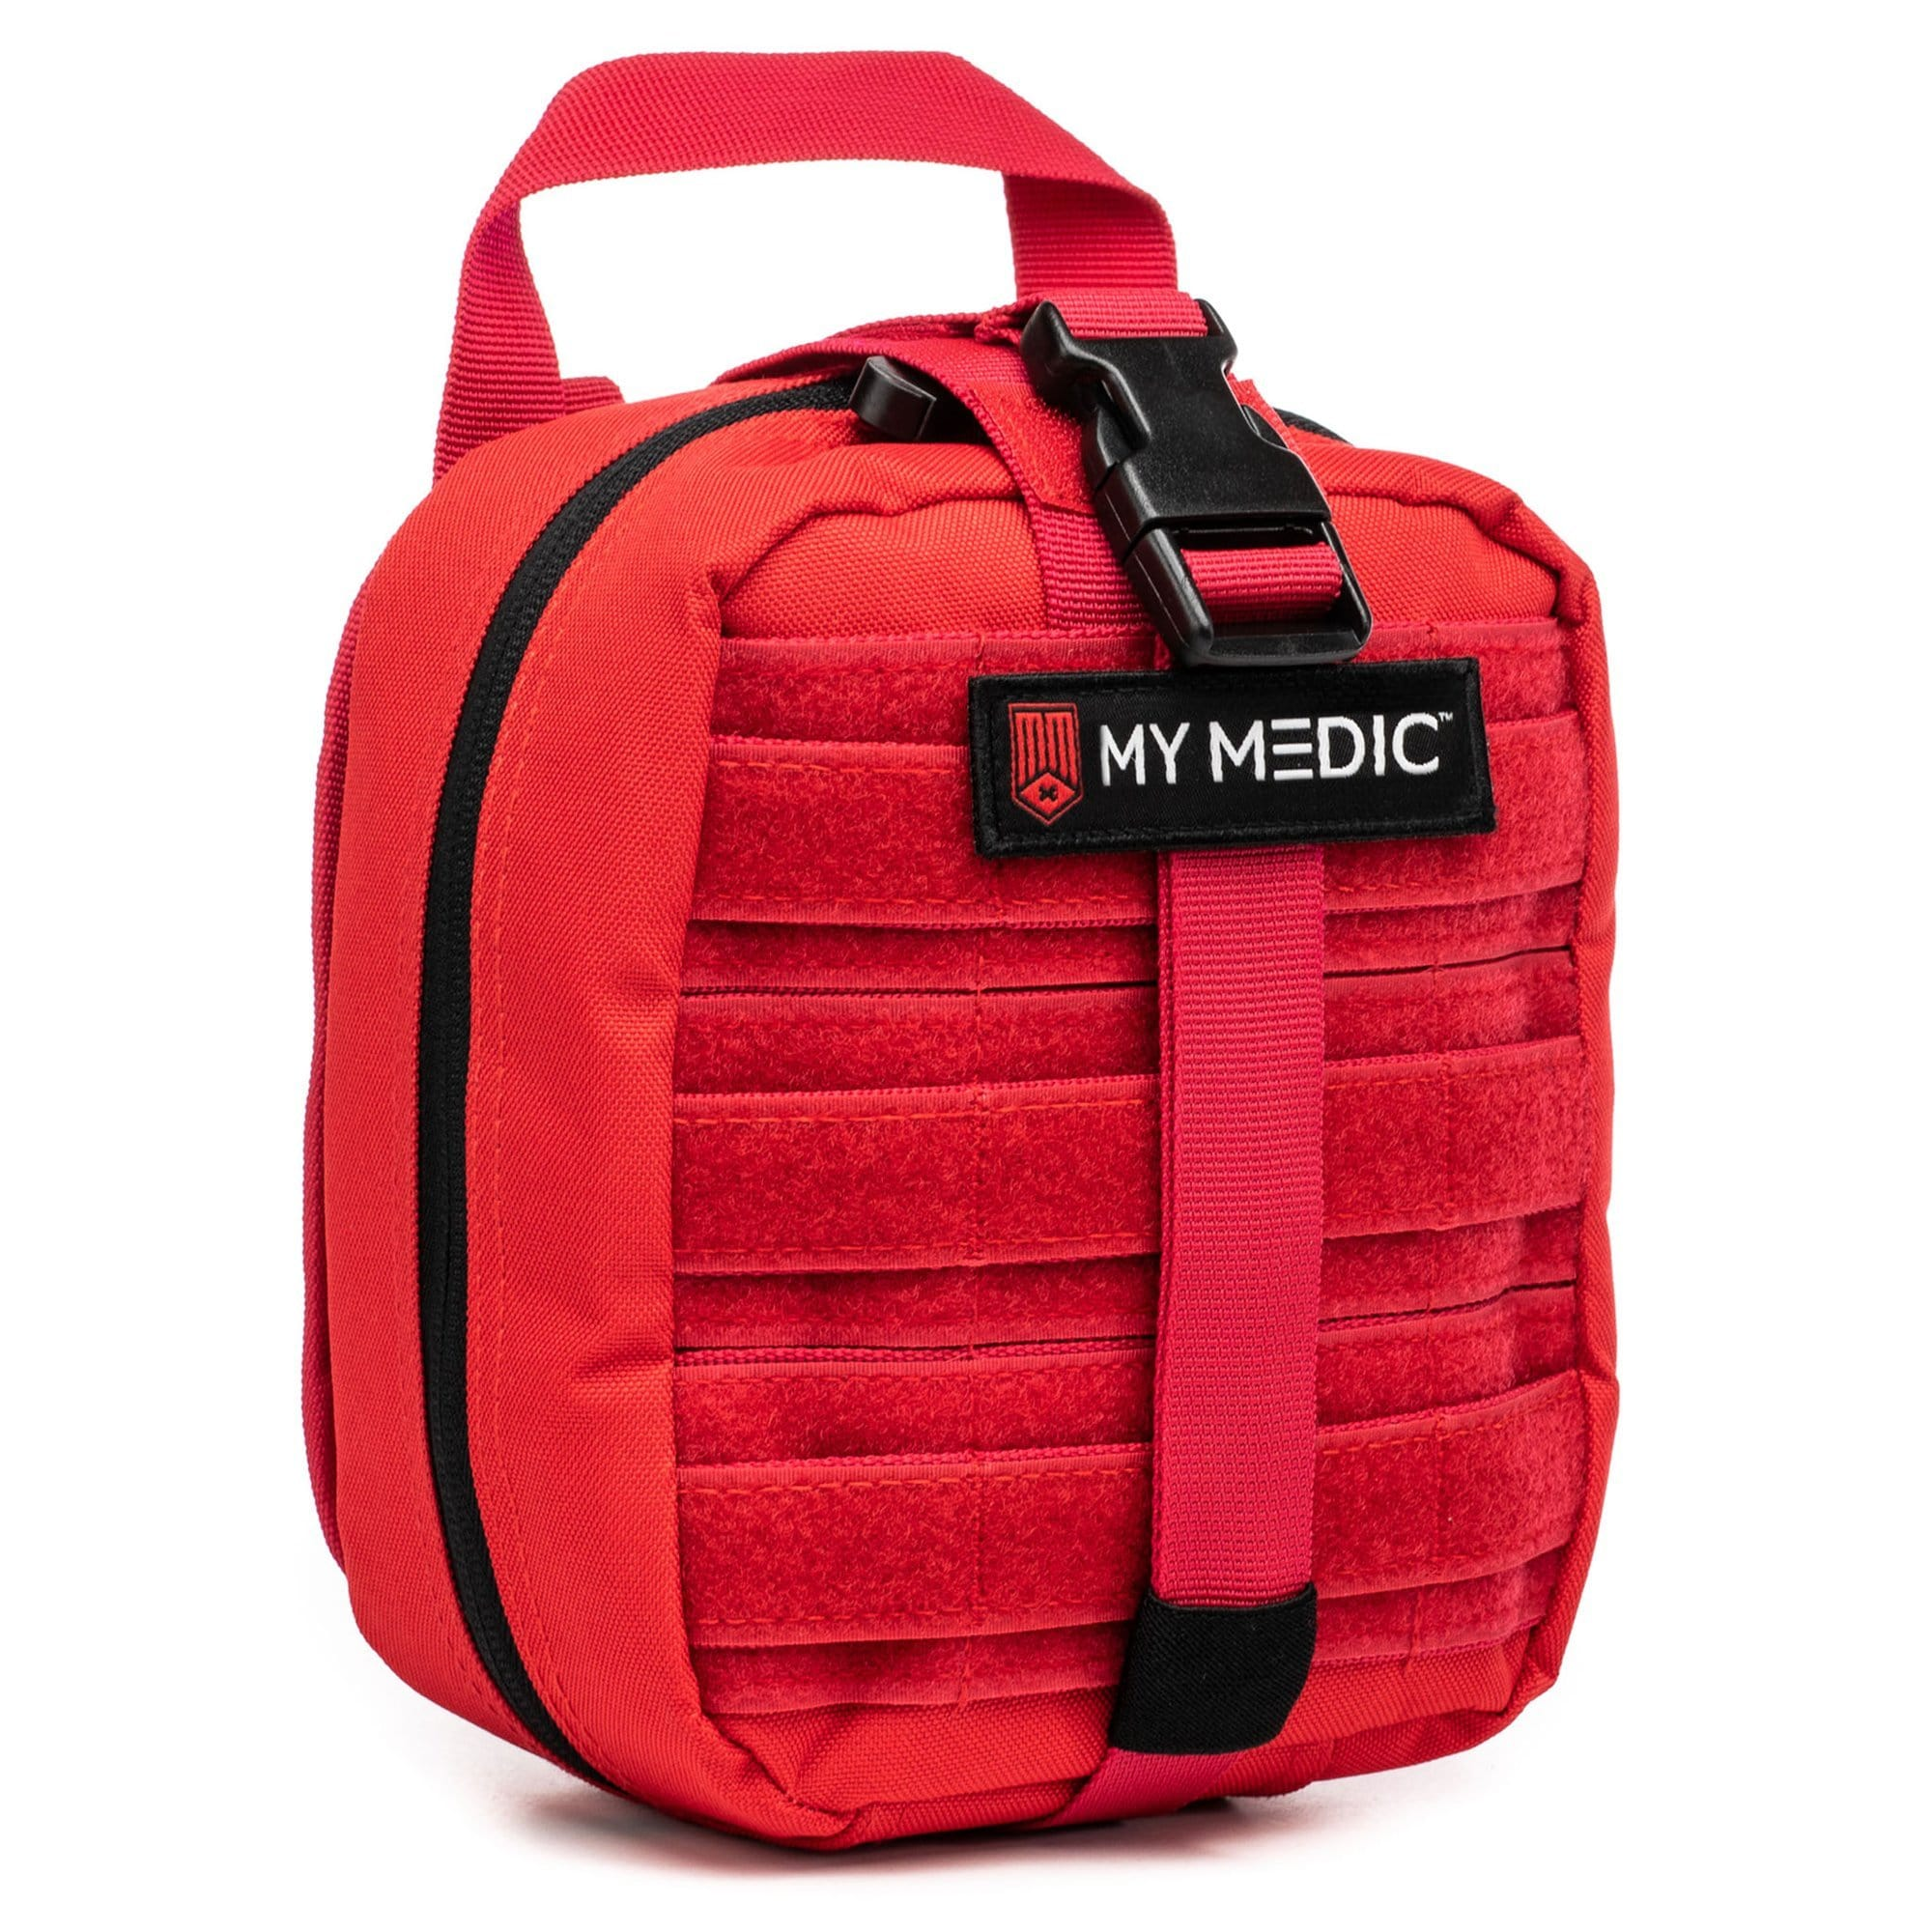 MyFAK: Advanced Individual First Aid Kit [IFAK] by MyMedic (color: RED)